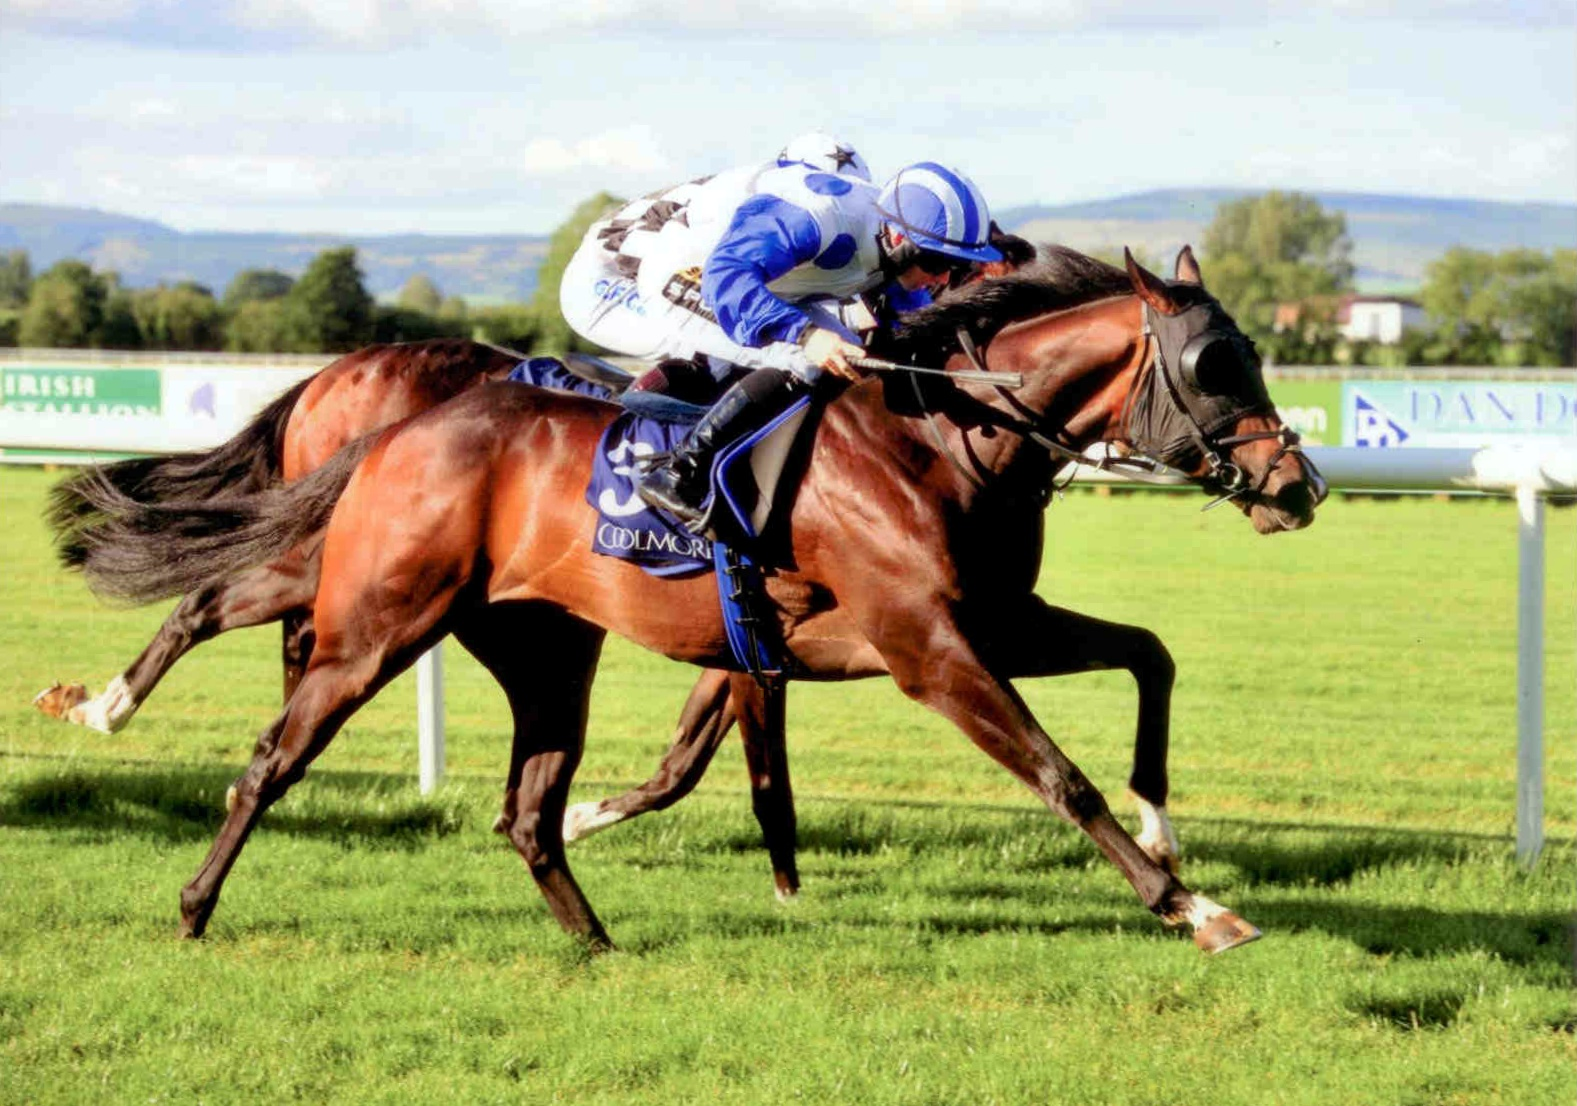 WAIPU COVE wins the Listed Coolmore Canford Cliffs Stakes in Tipperary 7th Aug 2015